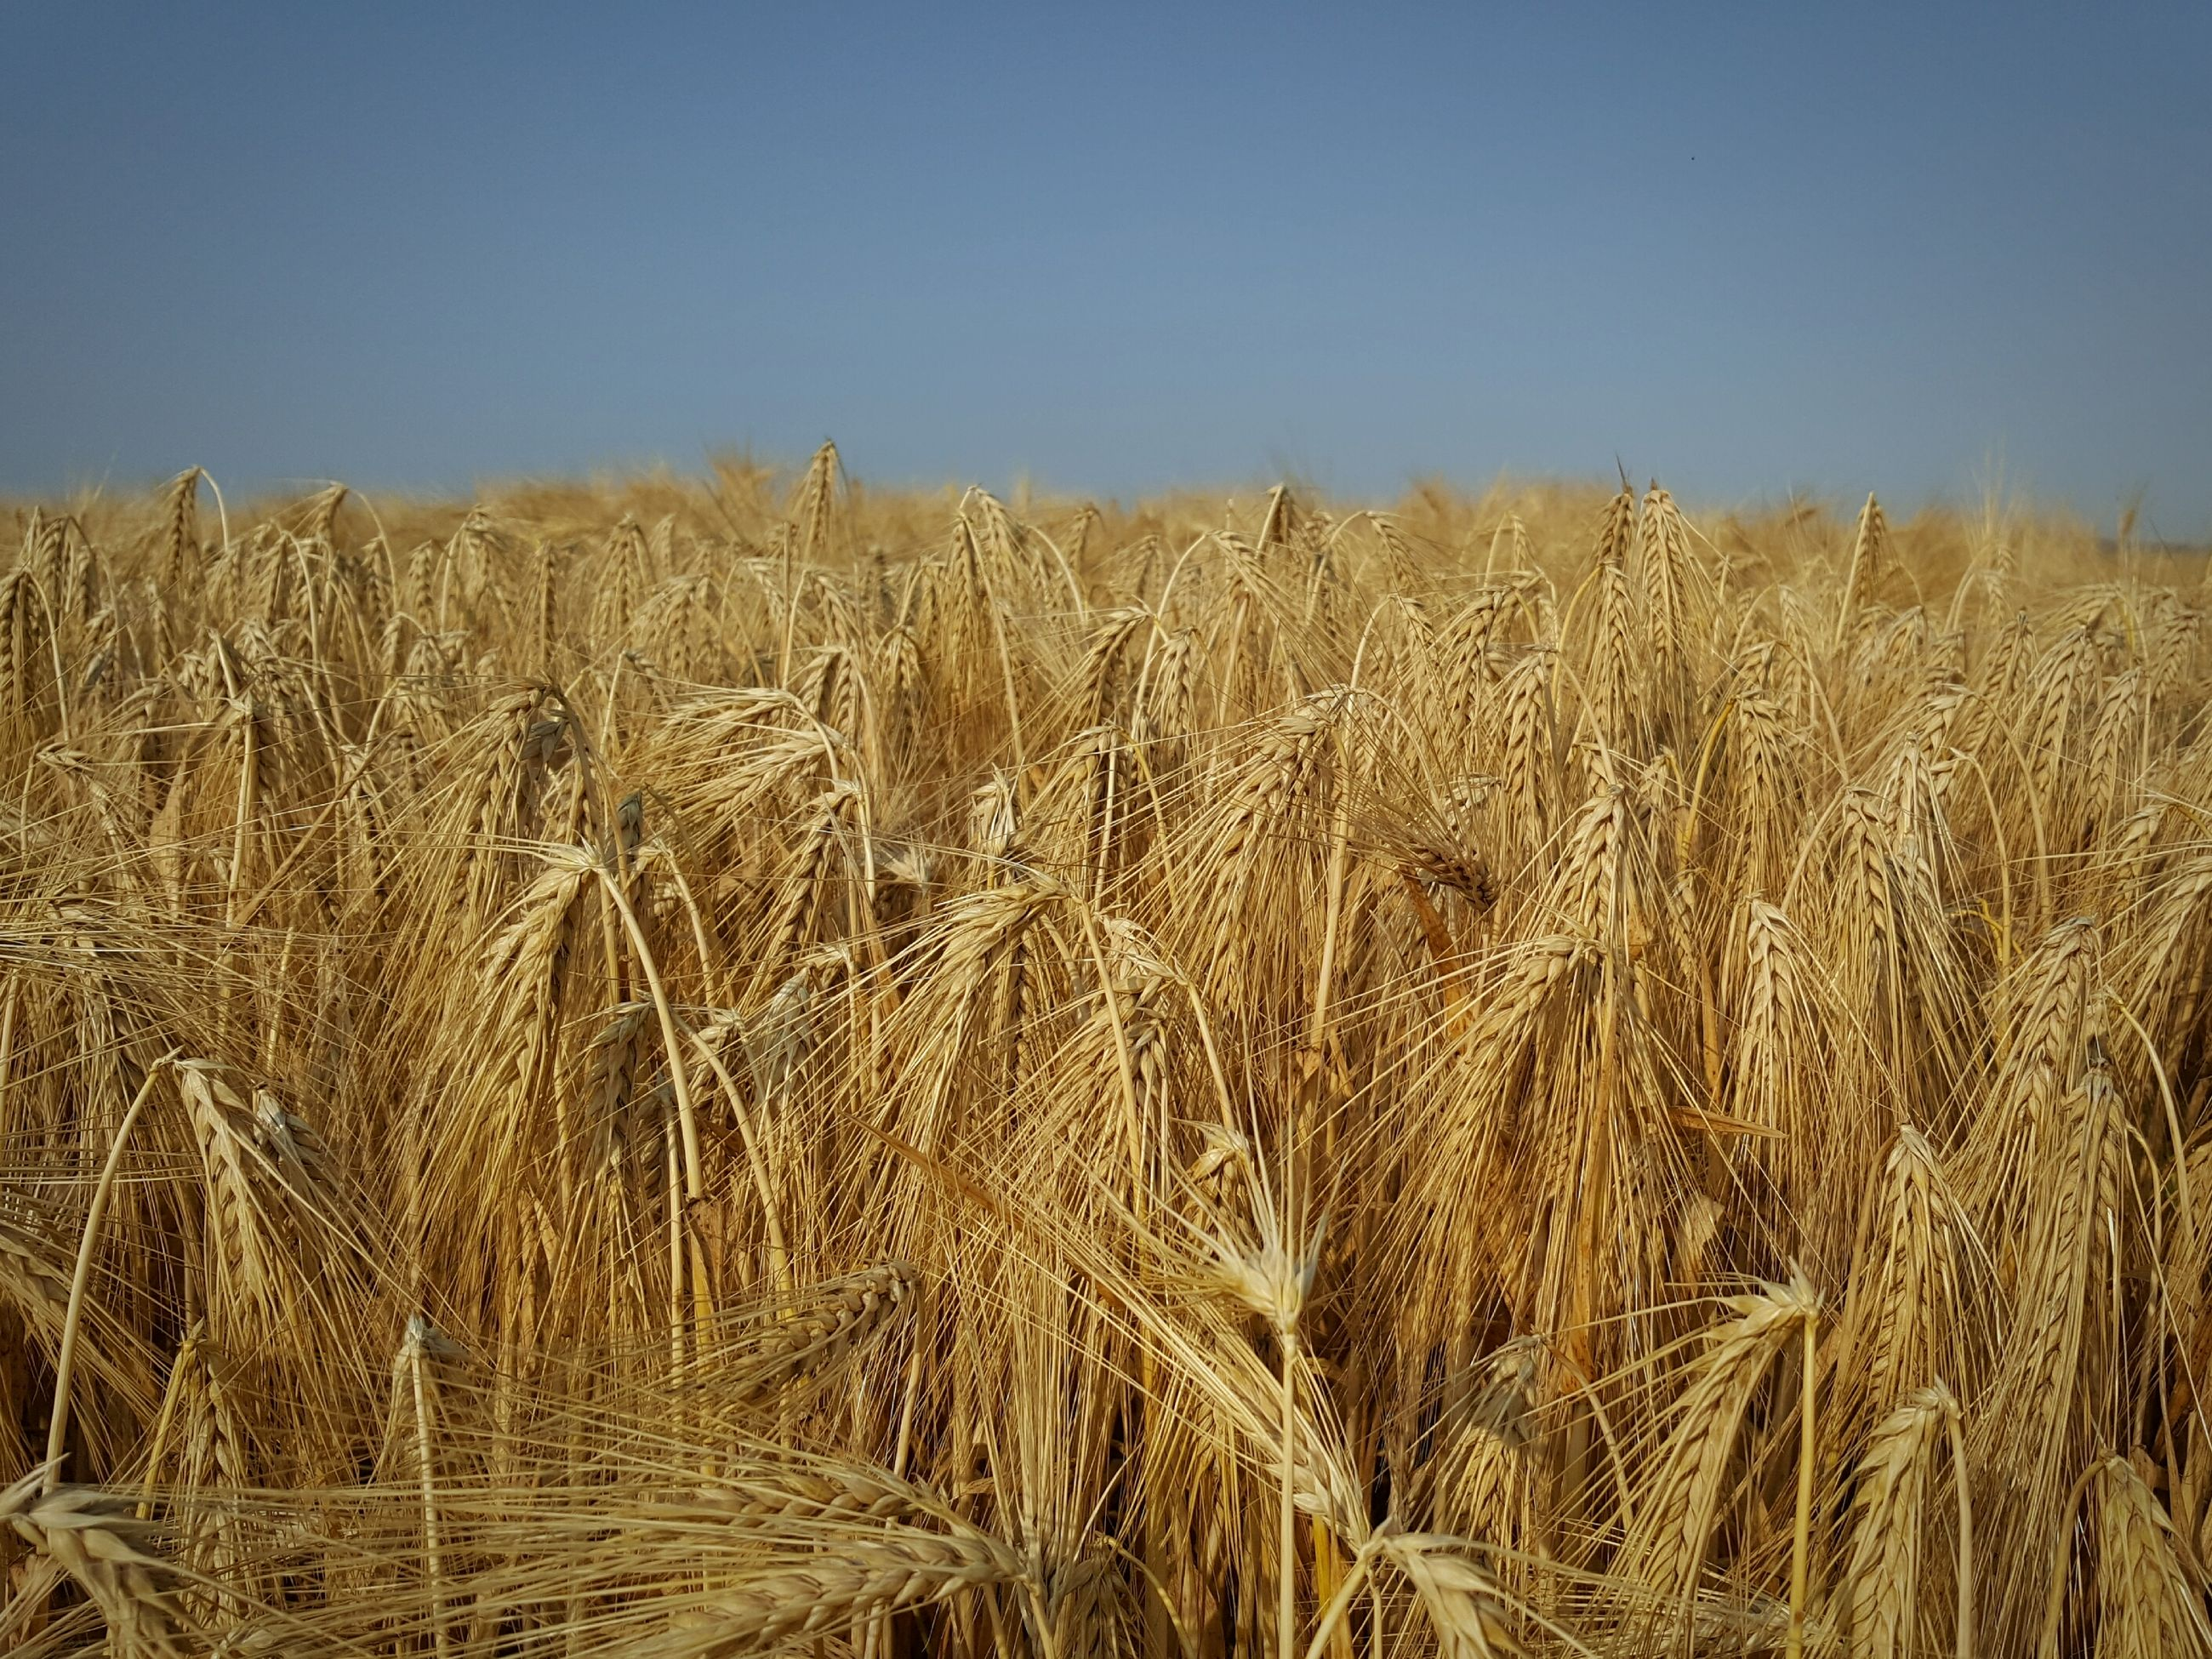 agriculture, field, farm, crop, growth, nature, cereal plant, tranquility, wheat, rural scene, tranquil scene, beauty in nature, landscape, clear sky, no people, ear of wheat, outdoors, plant, day, scenics, sky